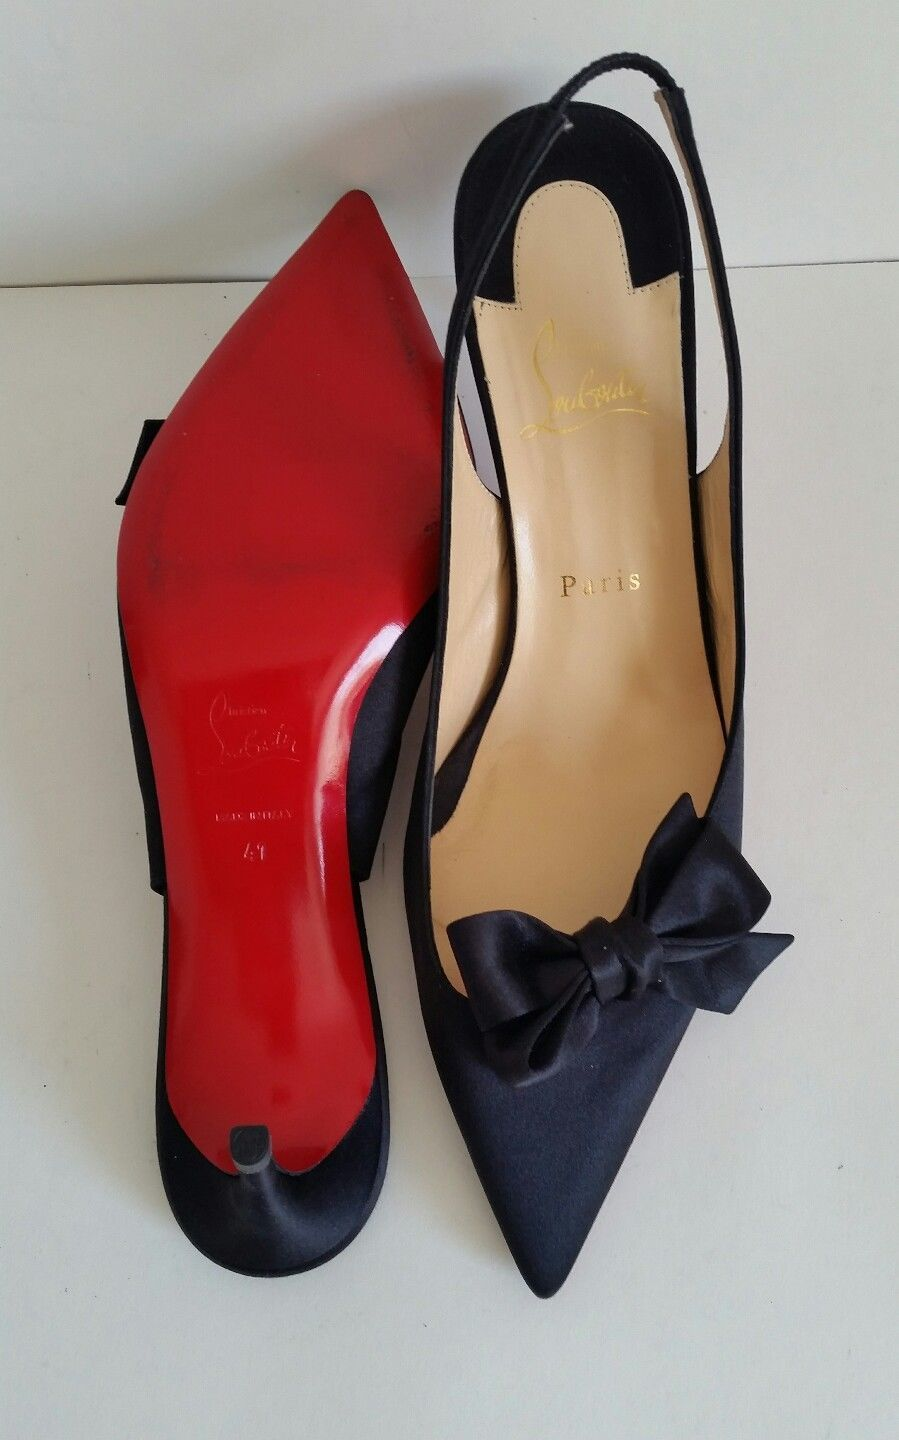 6d6b31711f26 CHRISTIAN LOUBOUTIN  Yasling  Bow Mid 70mm Pump - Size 10 - MSRP ...